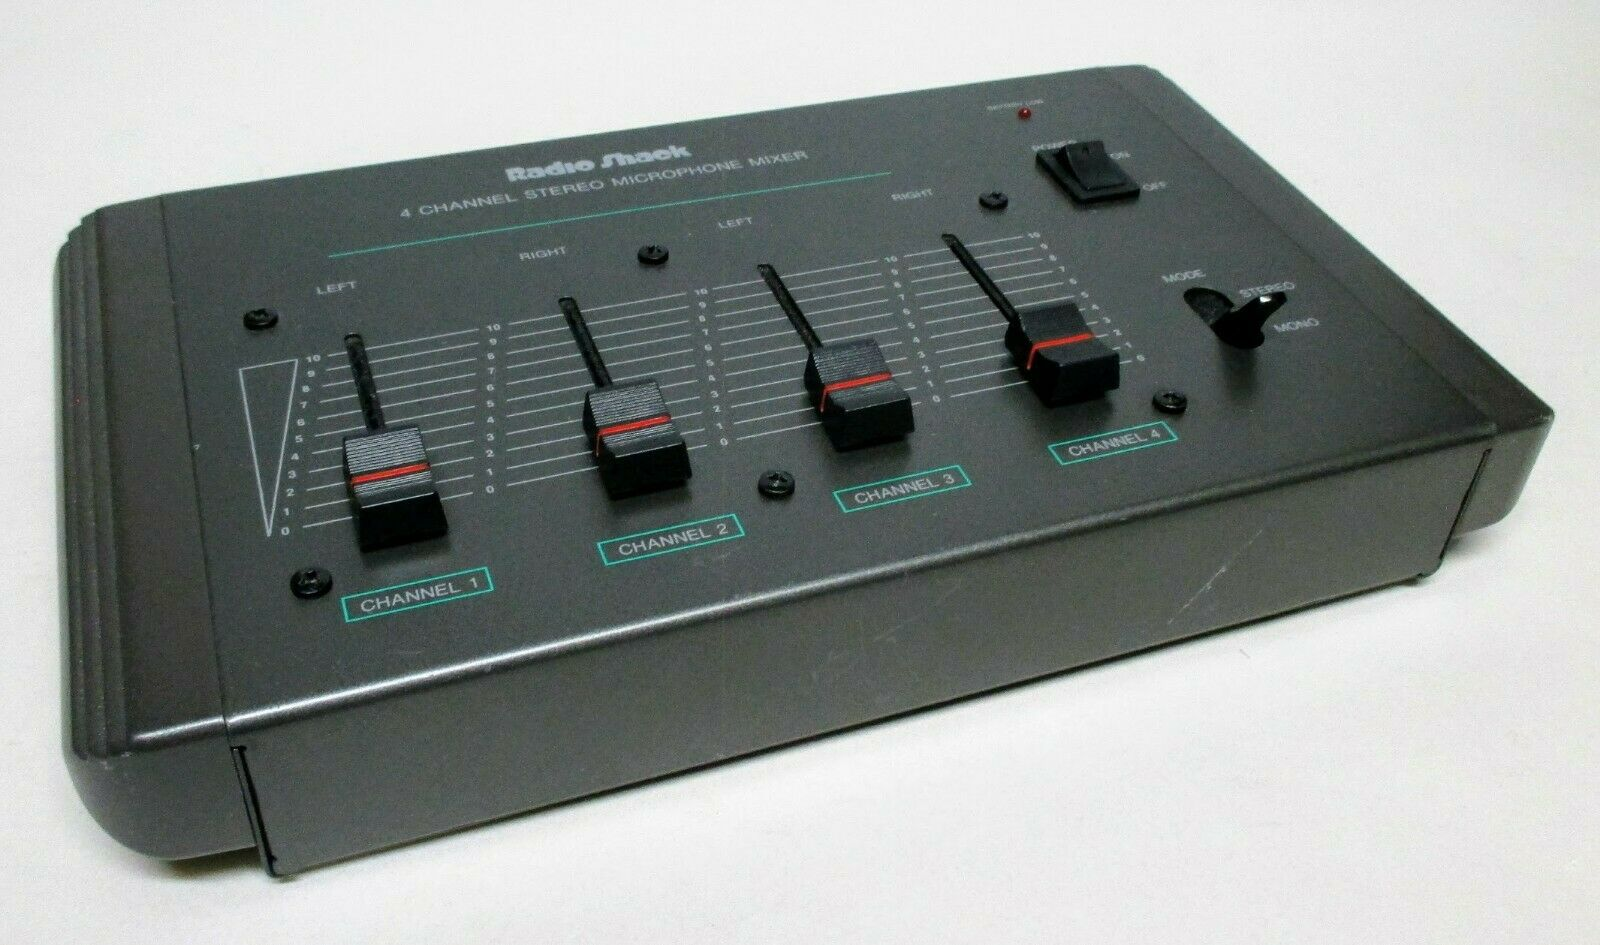 Radio Shack 4-Channel Microphone Mixer, Cat. No. 32-1106. Excellent condition. Buy it now for 60.00